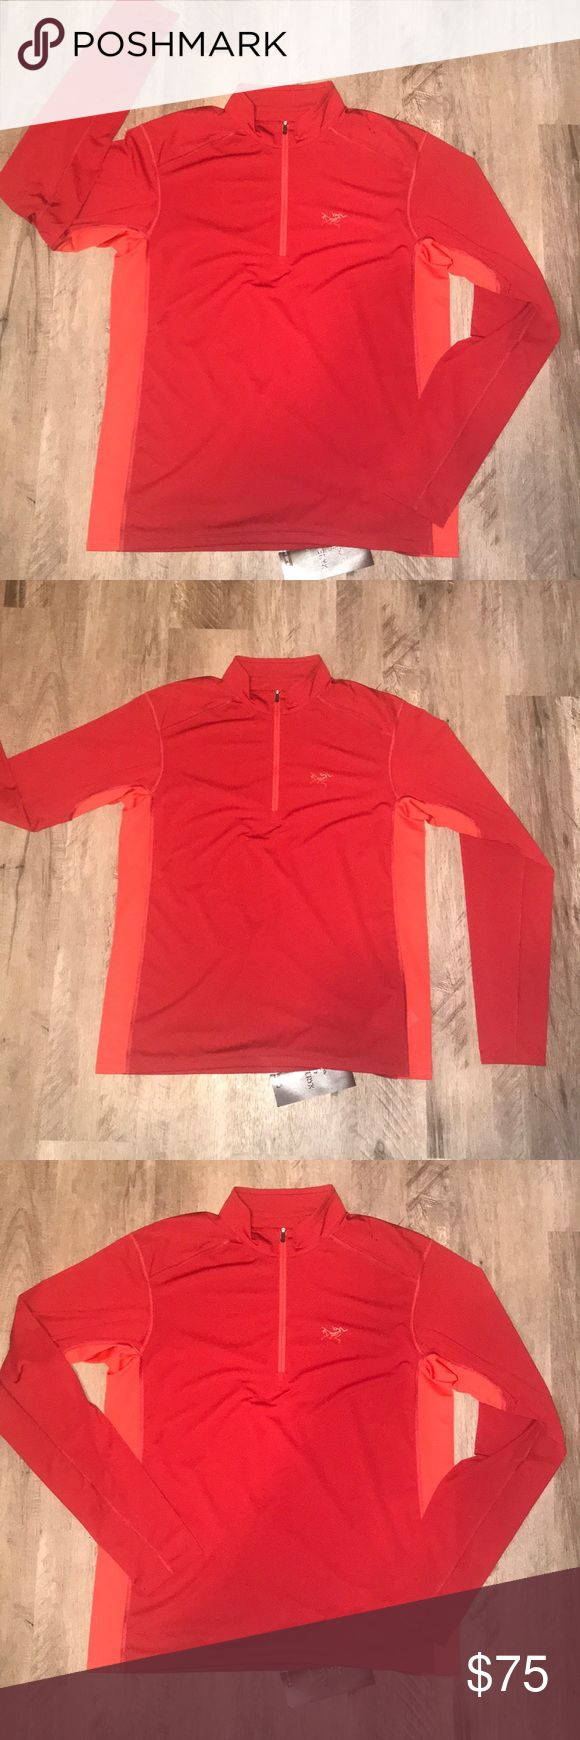 Arc'teryx l/s men's Arc'teryx l/s☄️Diablo red☄️ether zip neck☄️Quick drying,odor resistant, good moisture management, and high thermal efficiency☄️Comfort ease and simplicity for hiking and trekking☄️ Arc'teryx Shirts Tees - Long Sleeve